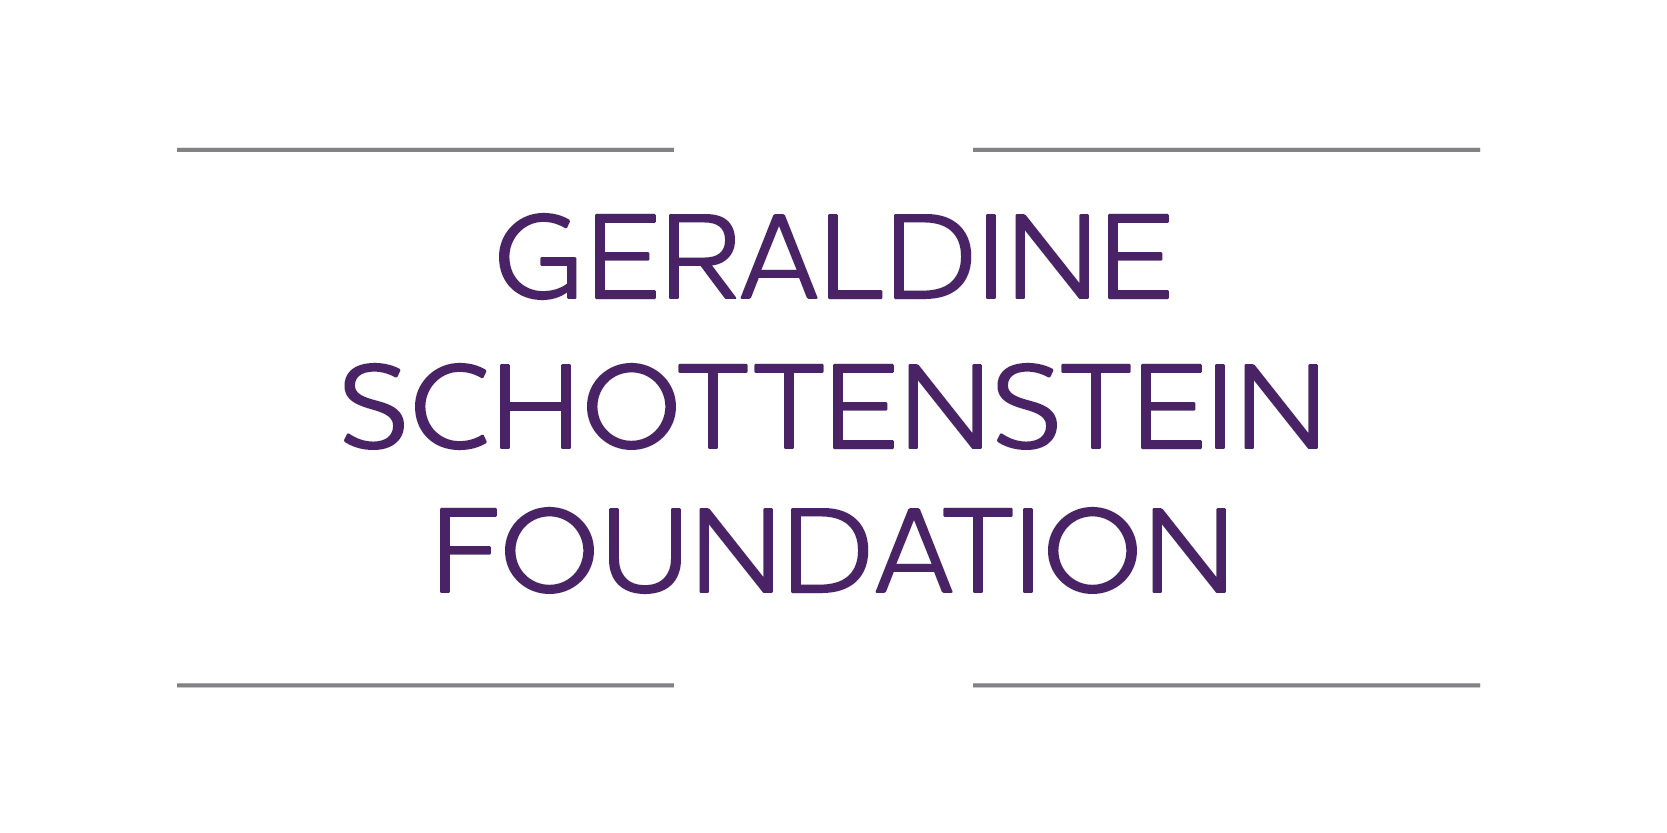 Geraldine Schottenstein Foundation (Stride)